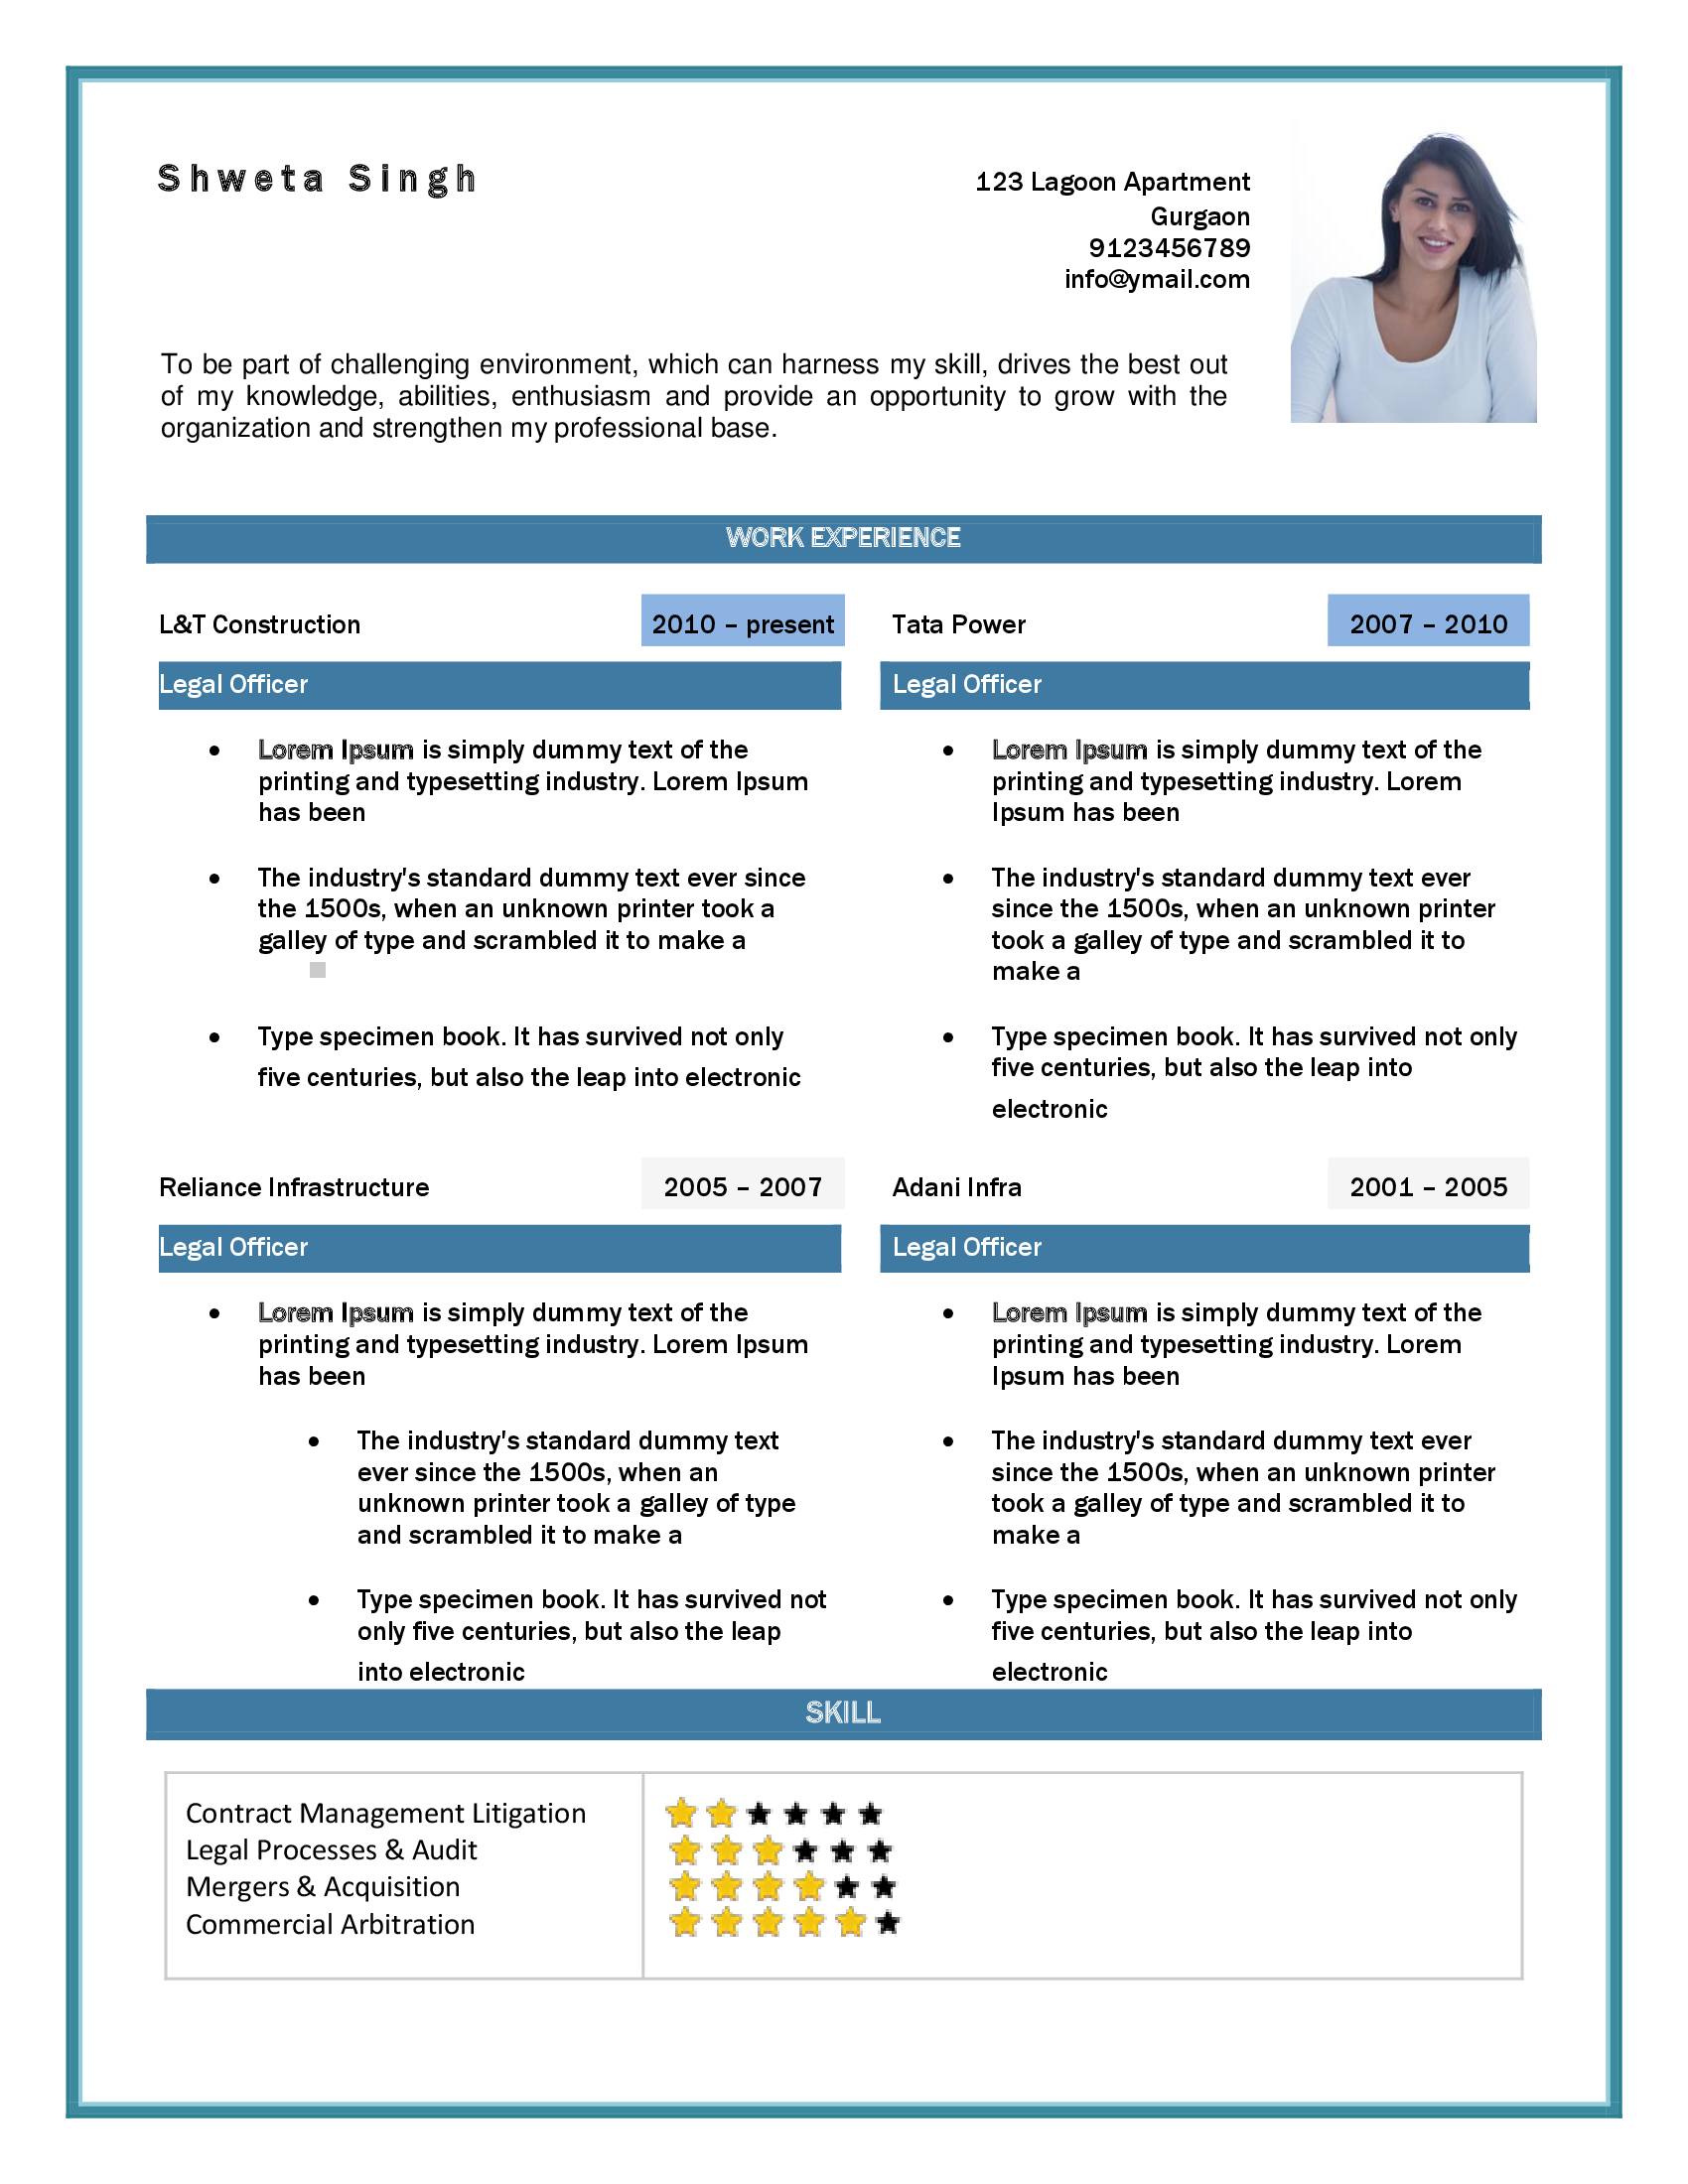 Opposenewapstandardsus  Splendid Hr Executive Resume  Resume For Hr Executive  Hr Executive  With Fair Enter Your Details With Adorable Resume Builder Free Online Printable Also Dice Resume In Addition Resume For Graphic Designer And Best Resume Font Size As Well As Extracurricular Activities On Resume Additionally Should I Use Resume Paper From Resumetemplatesamplescom With Opposenewapstandardsus  Fair Hr Executive Resume  Resume For Hr Executive  Hr Executive  With Adorable Enter Your Details And Splendid Resume Builder Free Online Printable Also Dice Resume In Addition Resume For Graphic Designer From Resumetemplatesamplescom